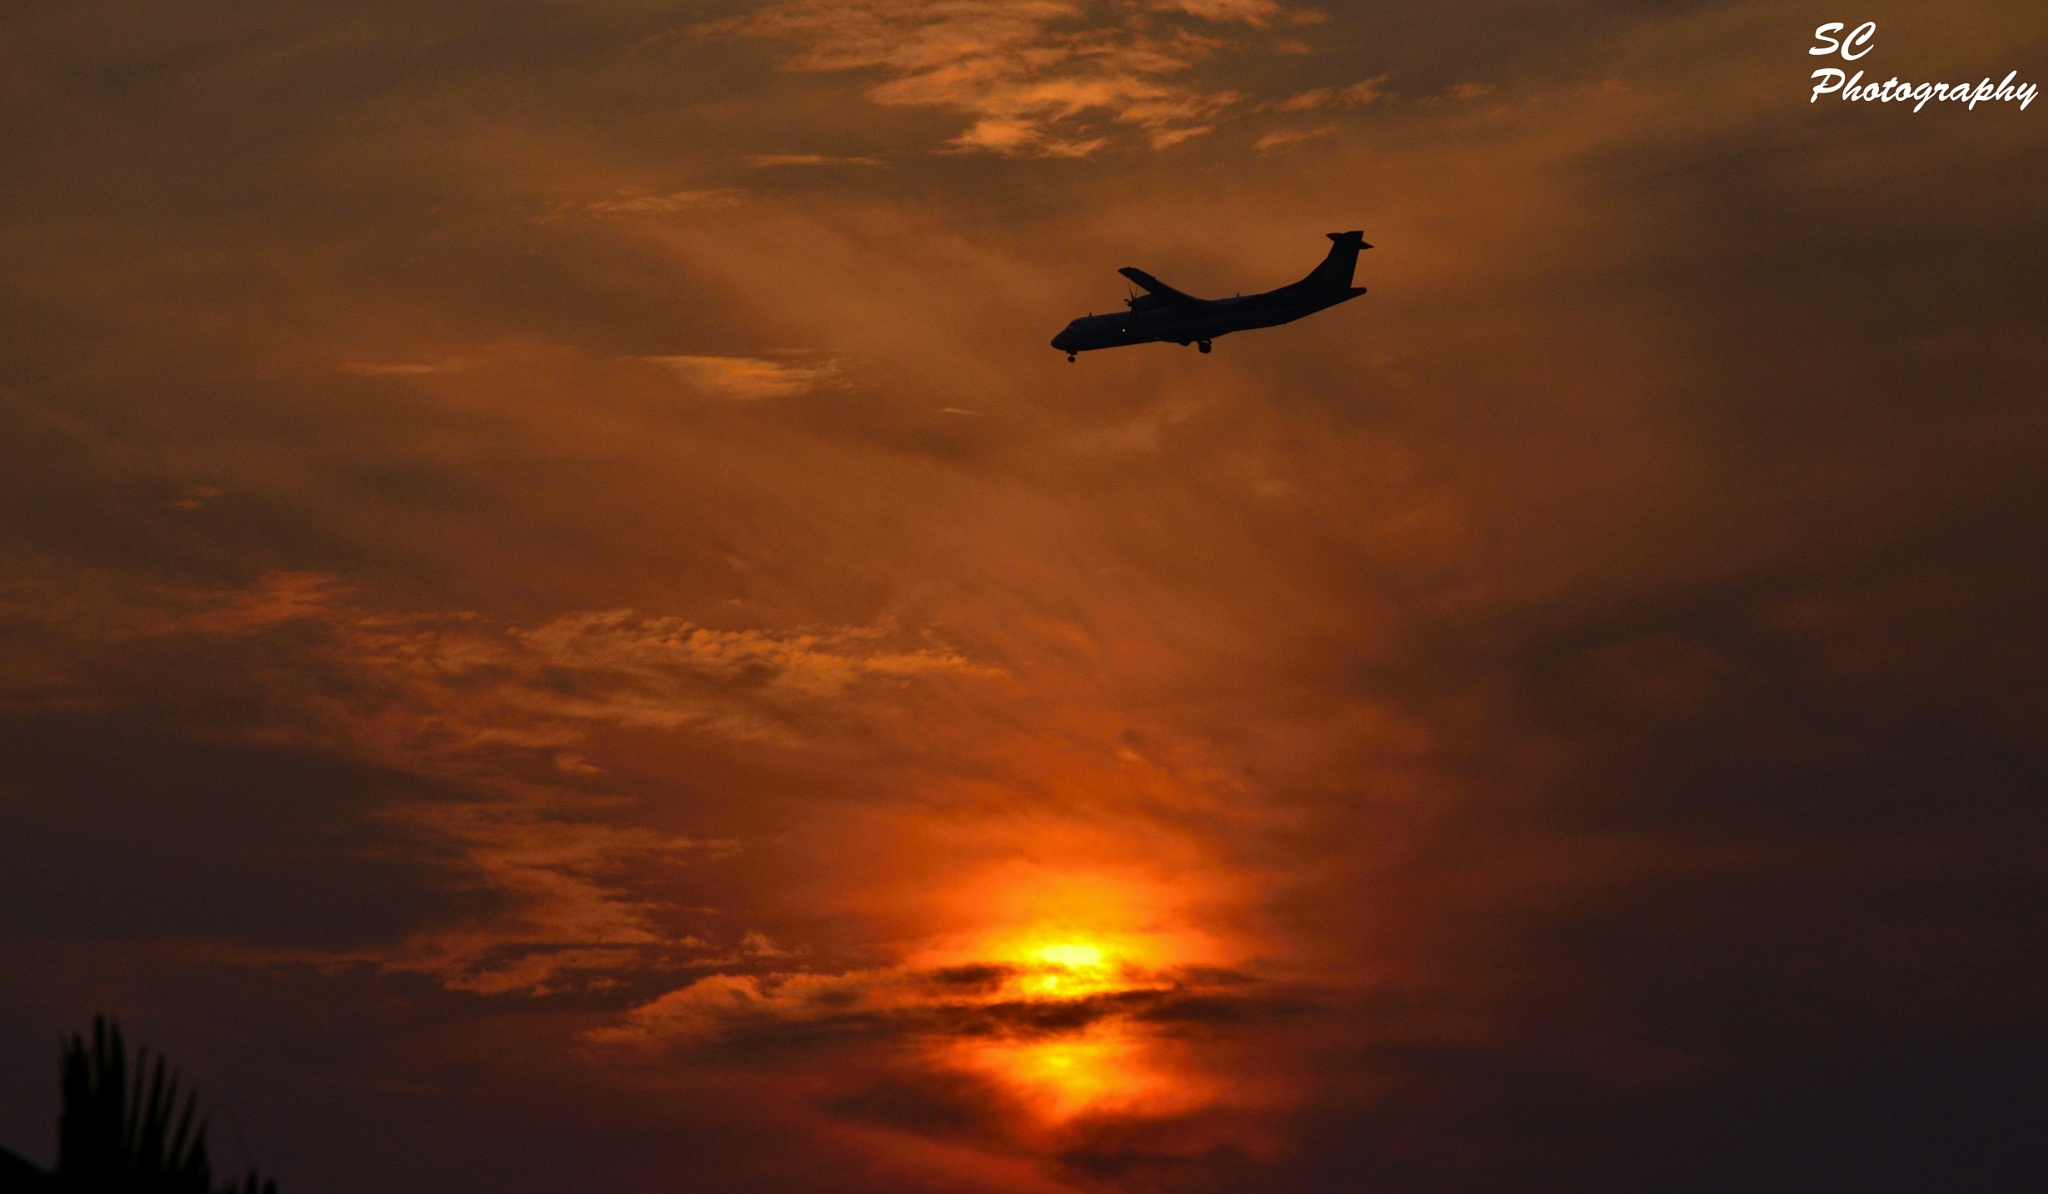 In the evening flight at sunset by surajit.chakraborty.3745